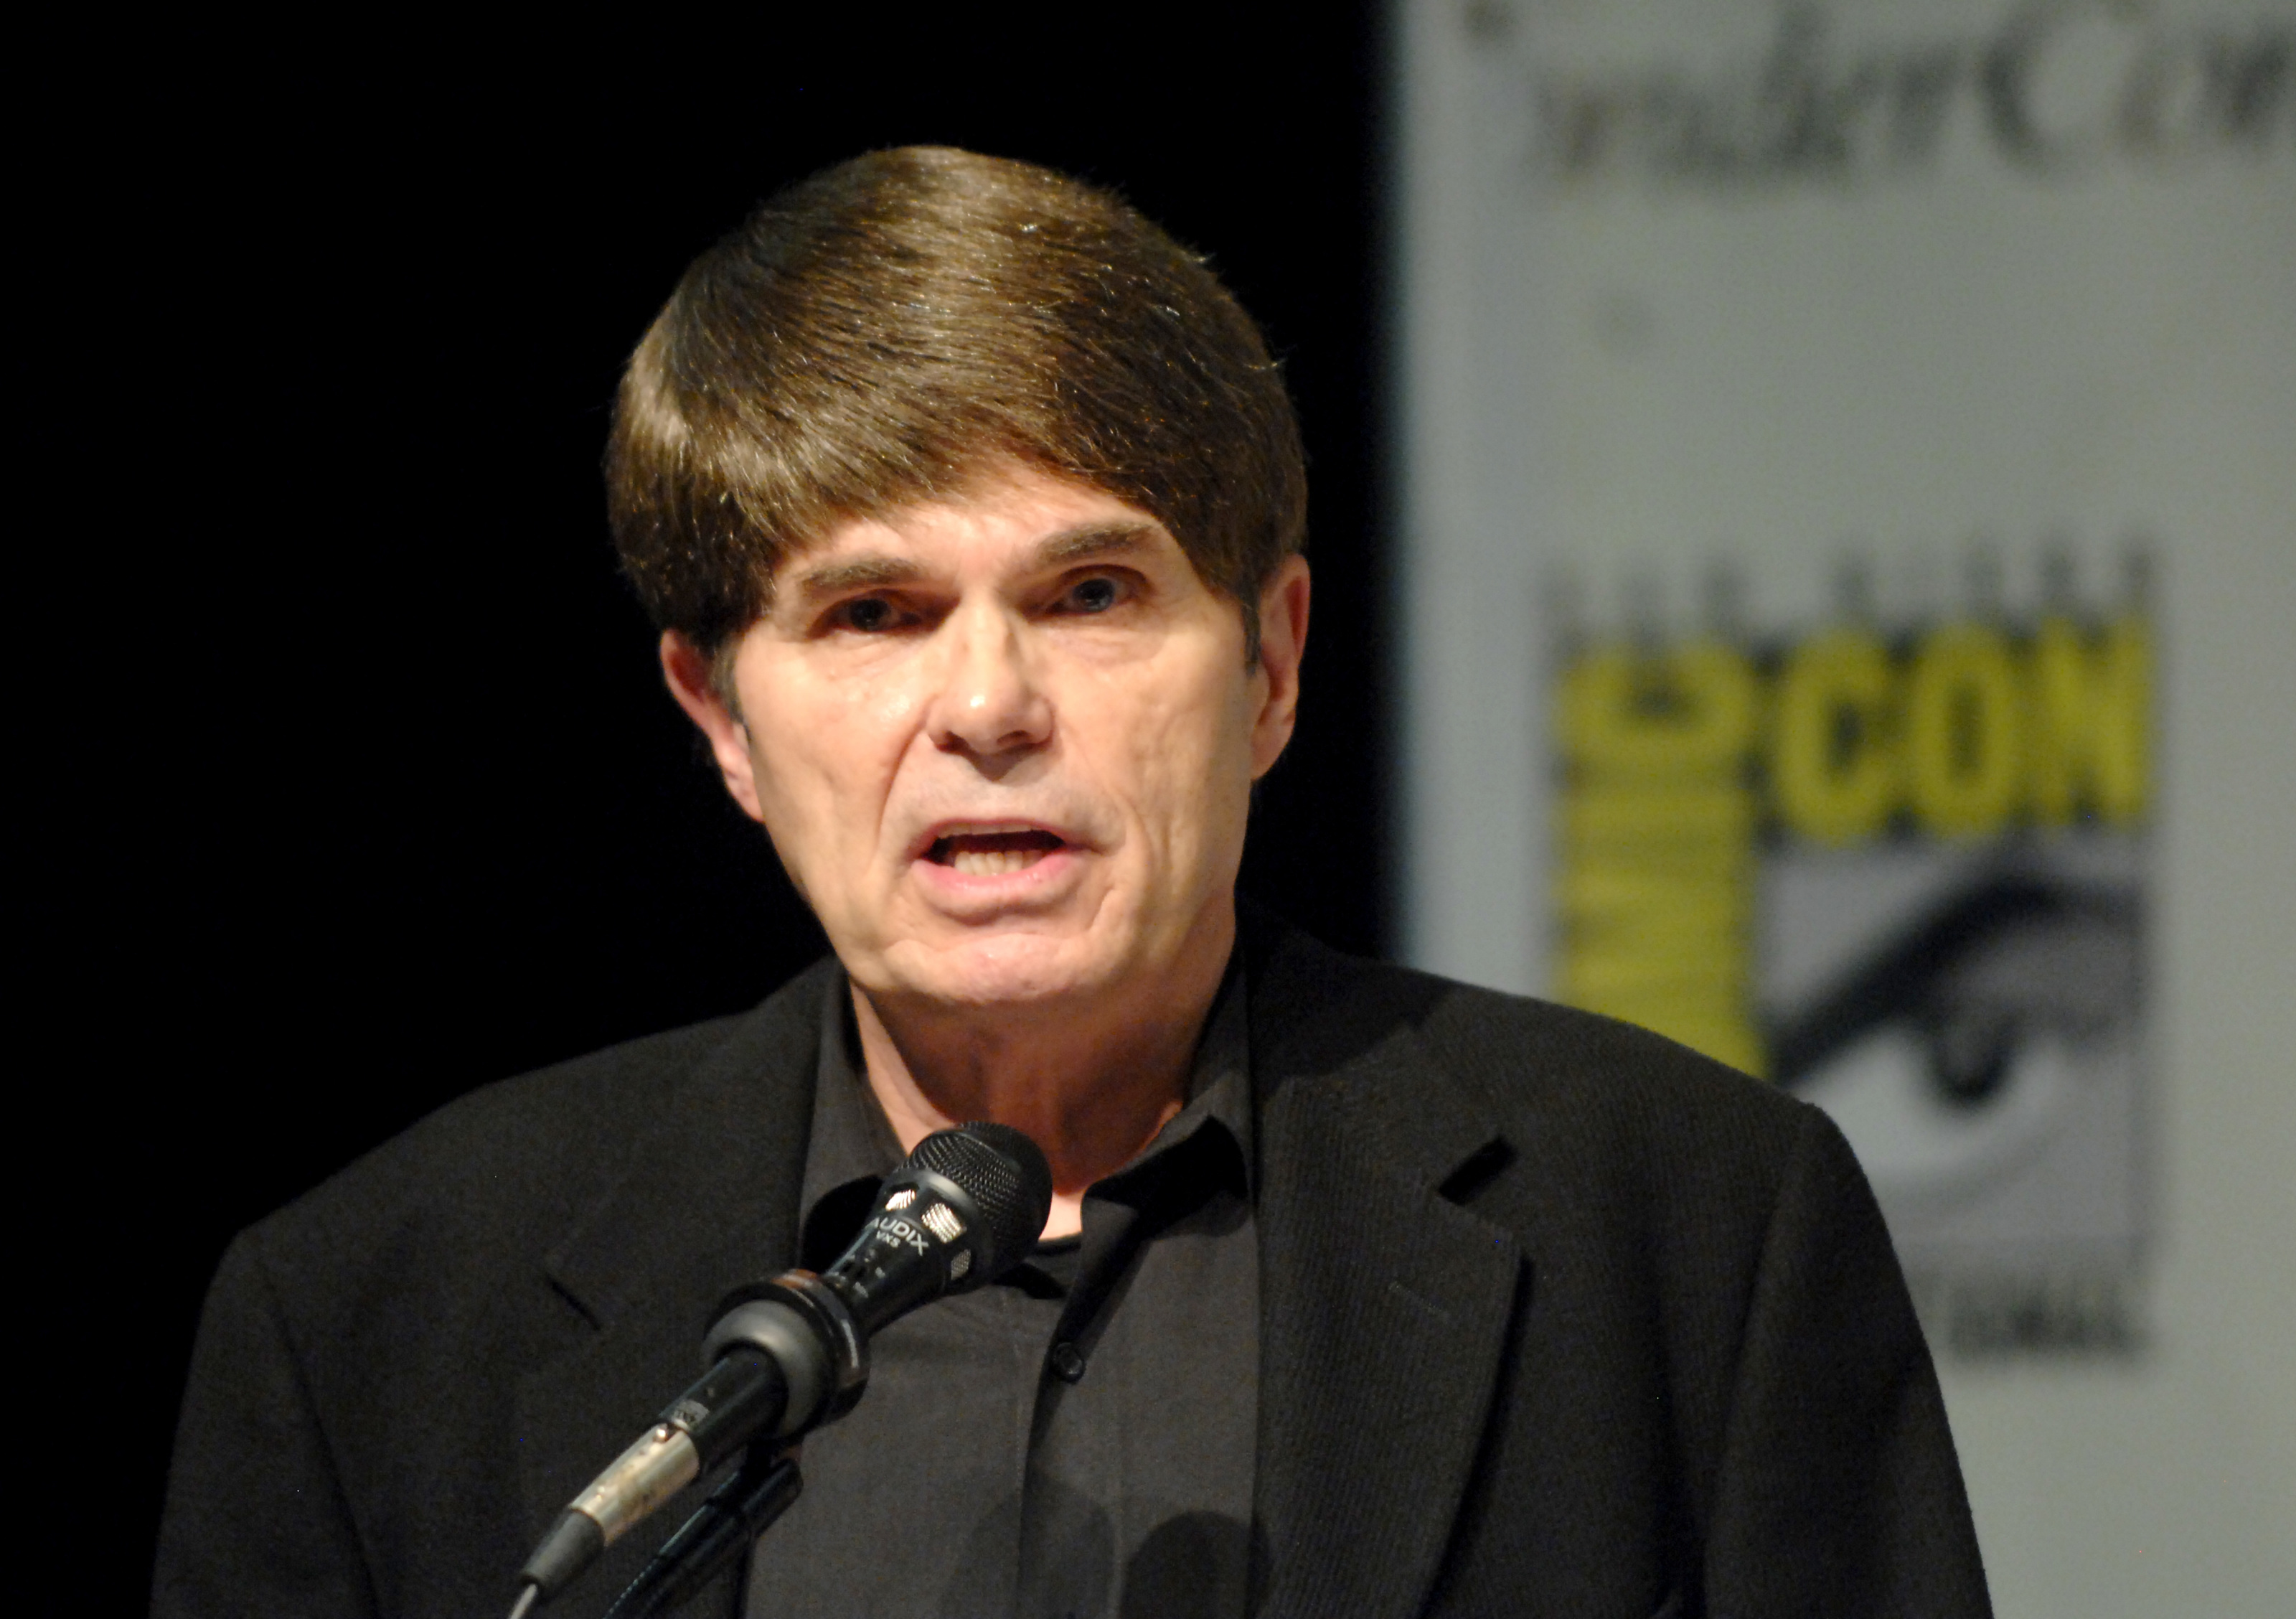 Dean Koontz on his newest book and fame as an author